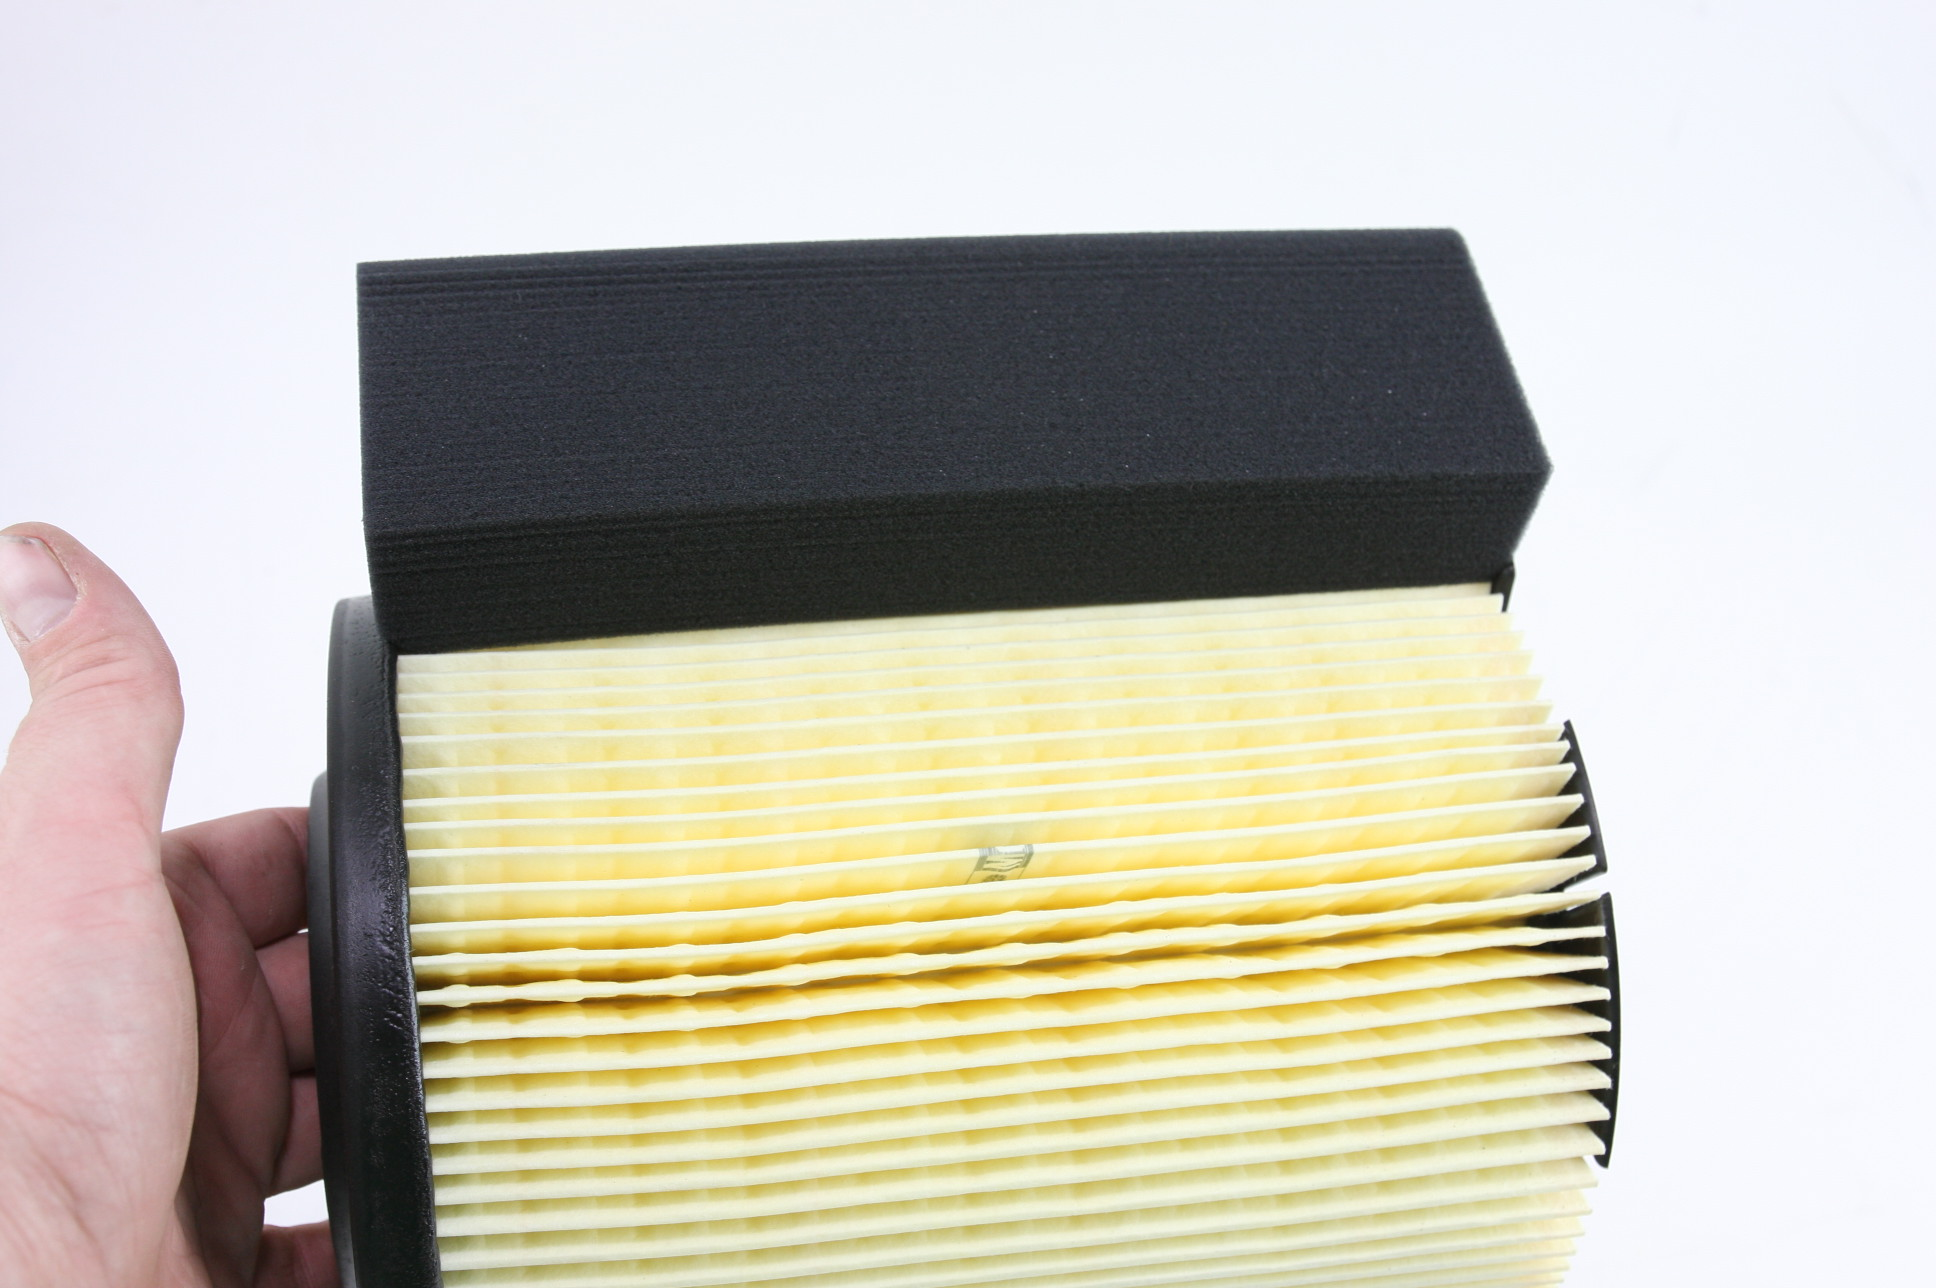 ** New OEM 2 Pack Motorcraft FA1927 Ford HC3Z9601A Powerstroke Diesel Air Filter - image 7